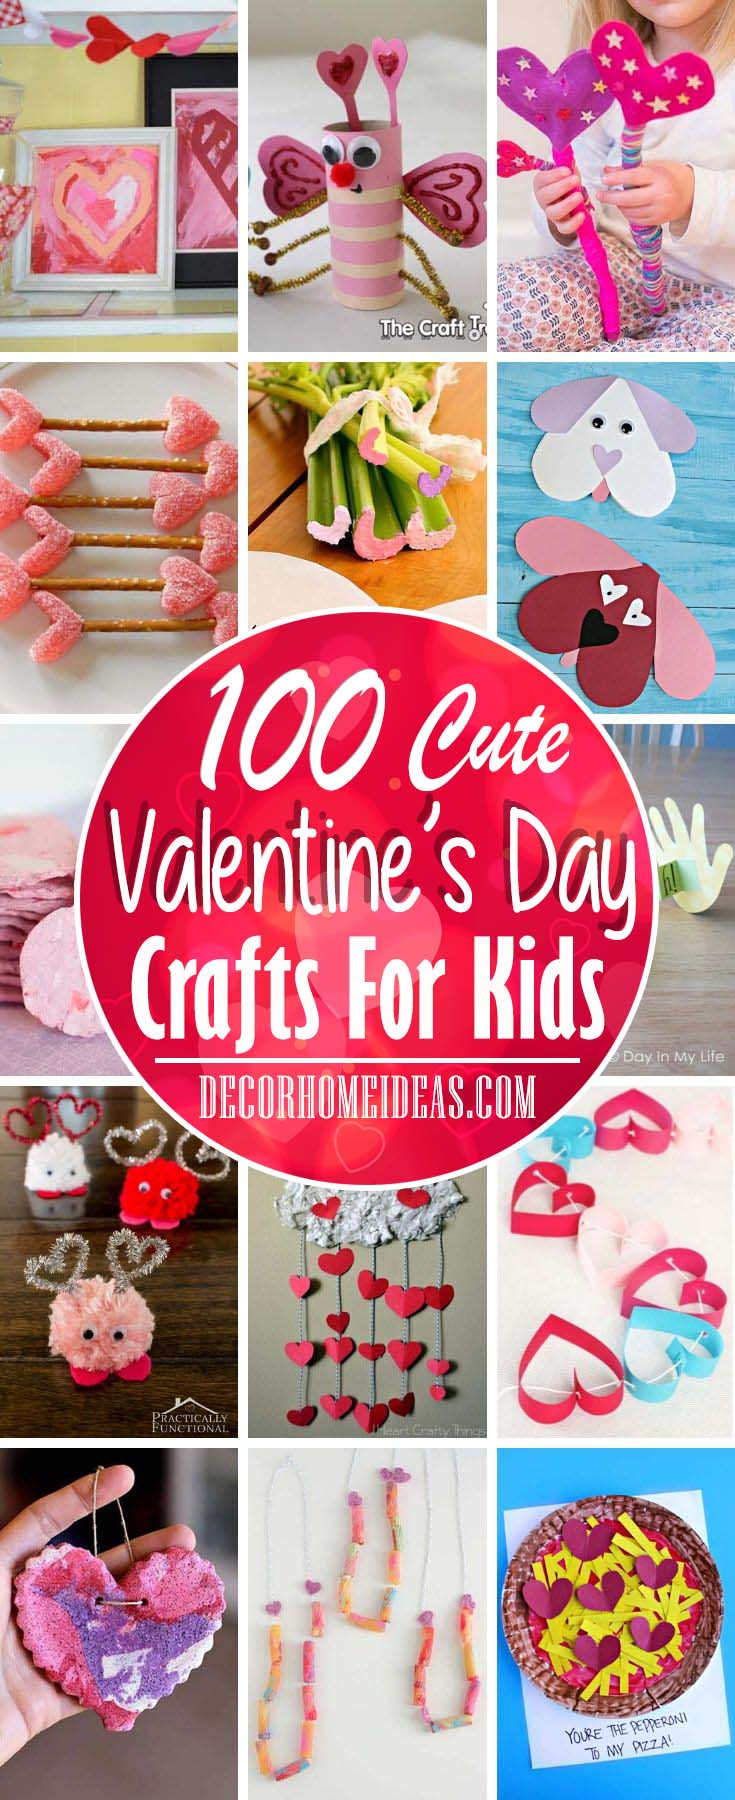 100 Fun and Easy Valentines Day Crafts For Kids. Super cute ideas to get crafty with your kids. #valentine #crafts #kids #decorhomeideas